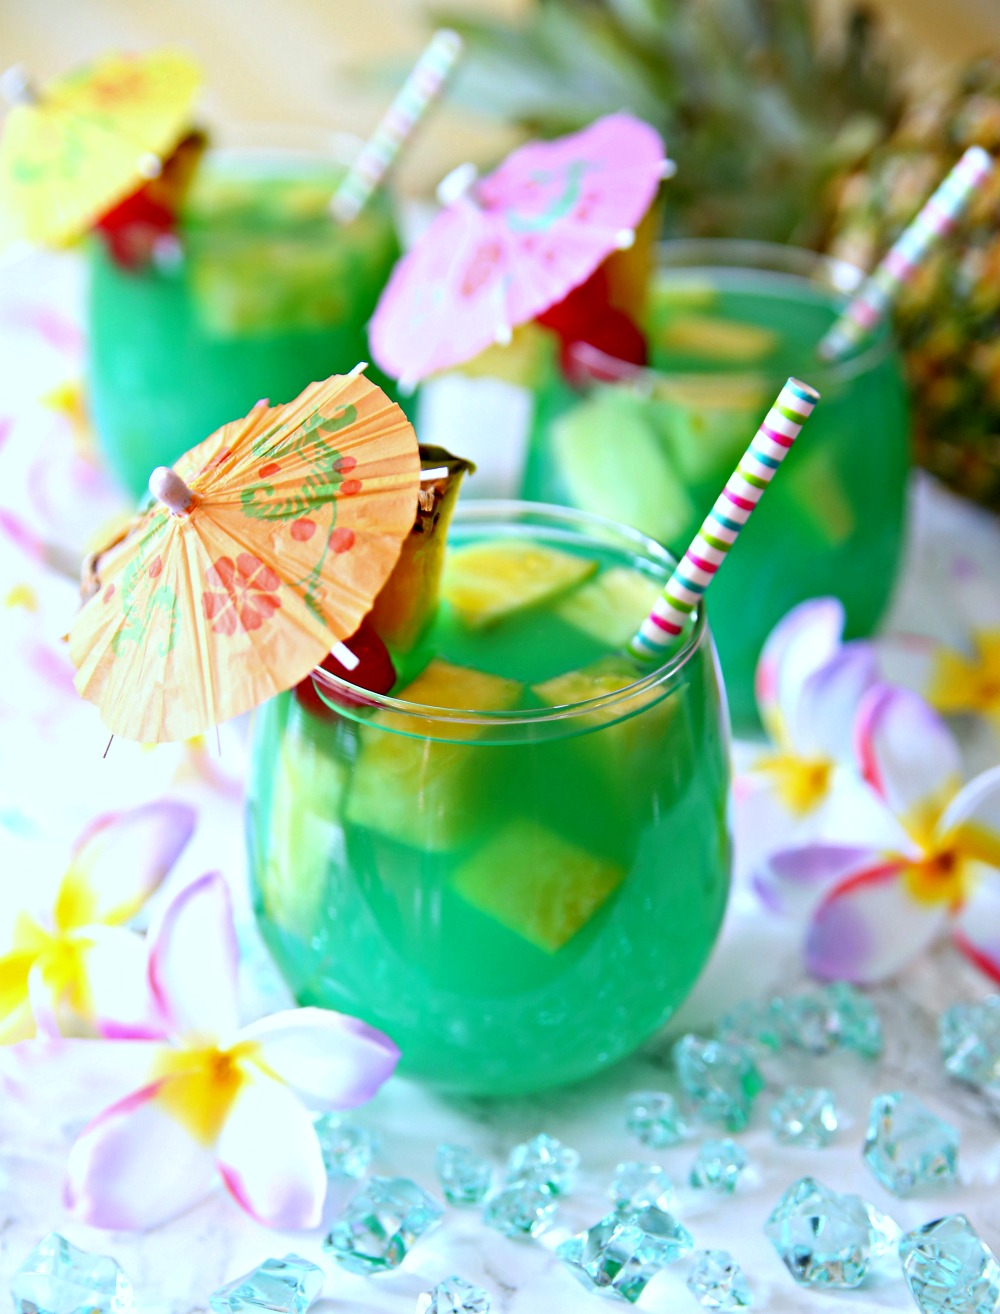 Relax this summer with a tall glass of Mermaid Water Rum Punch. A delicious coconut rum punch recipe!